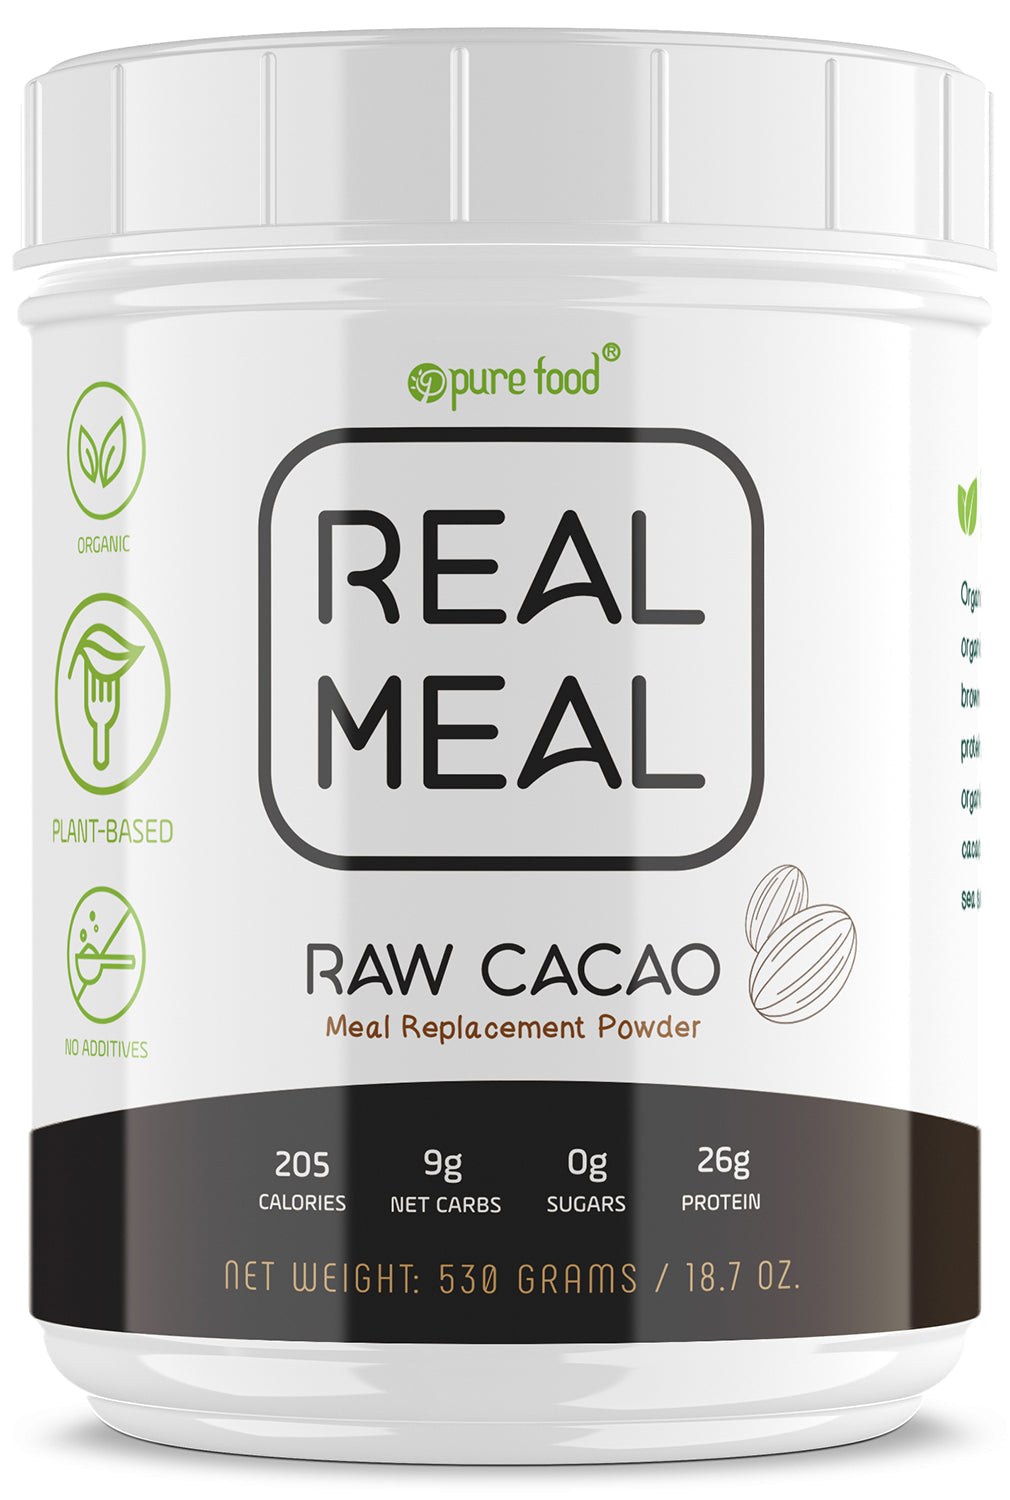 Pure Food REAL MEAL Replacement Powder: CHOCOLATE